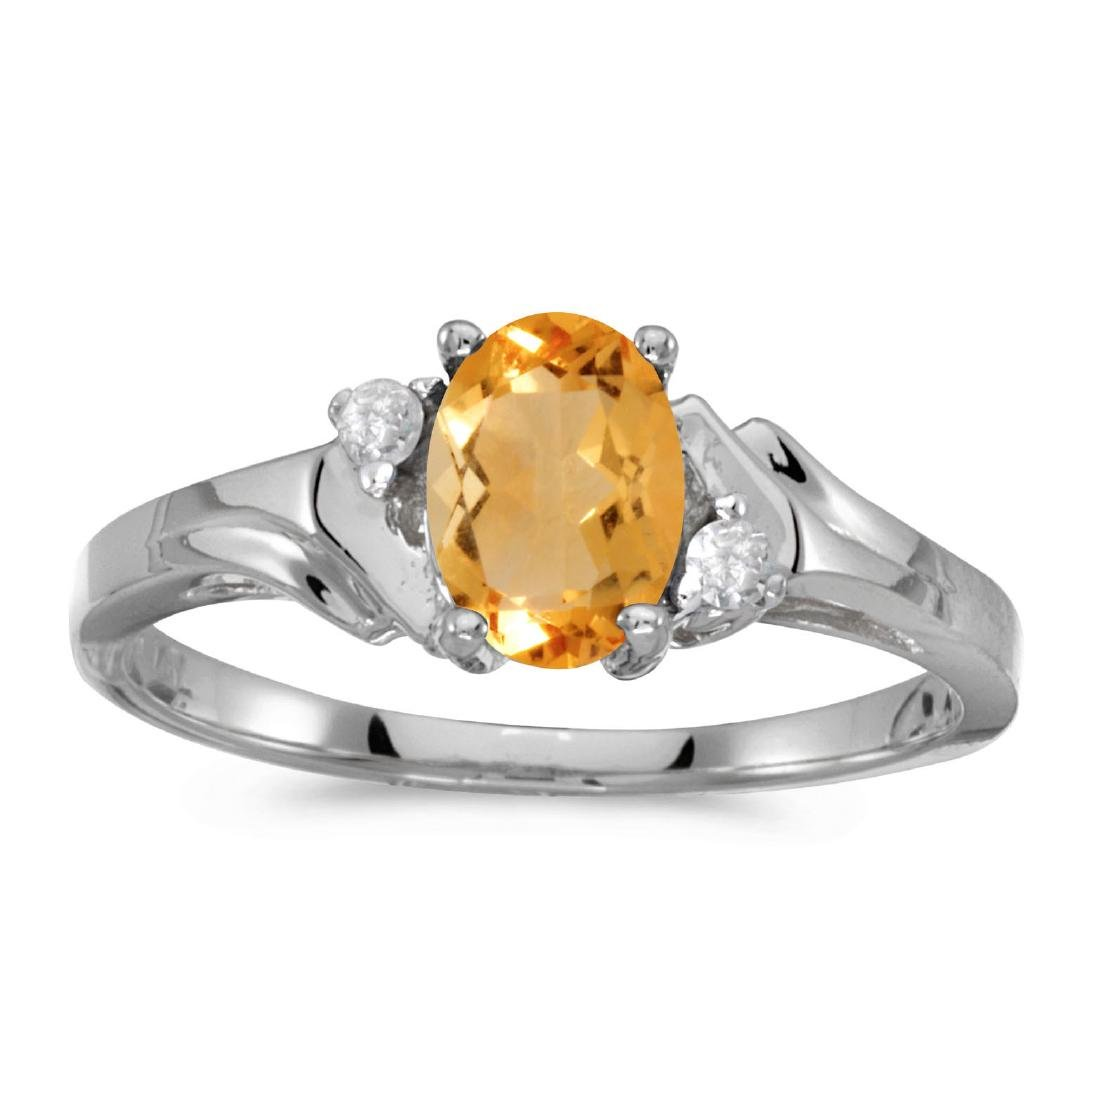 Certified 14k White Gold Oval Citrine And Diamond Ring